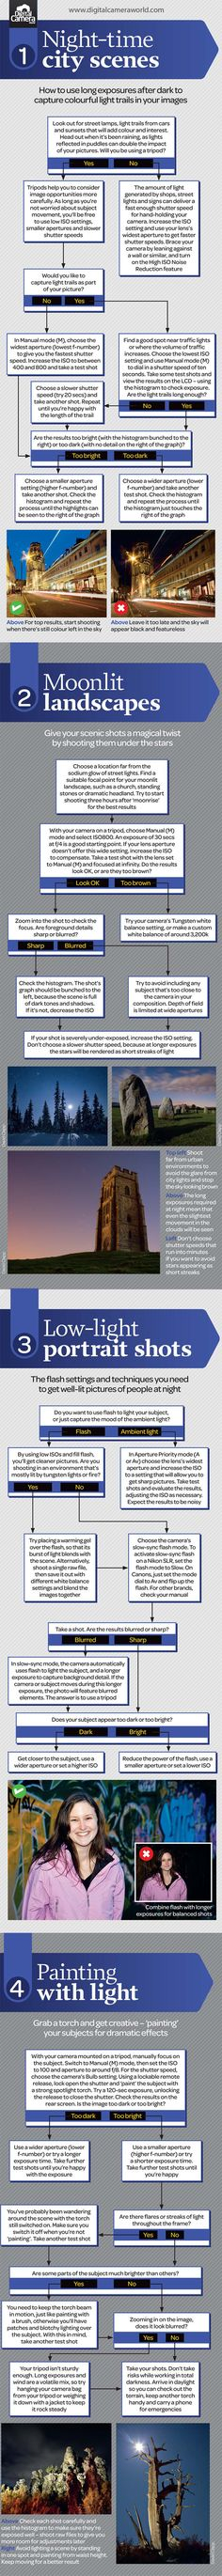 Free night photography cheat sheet: how to shoot popular low-light scenes